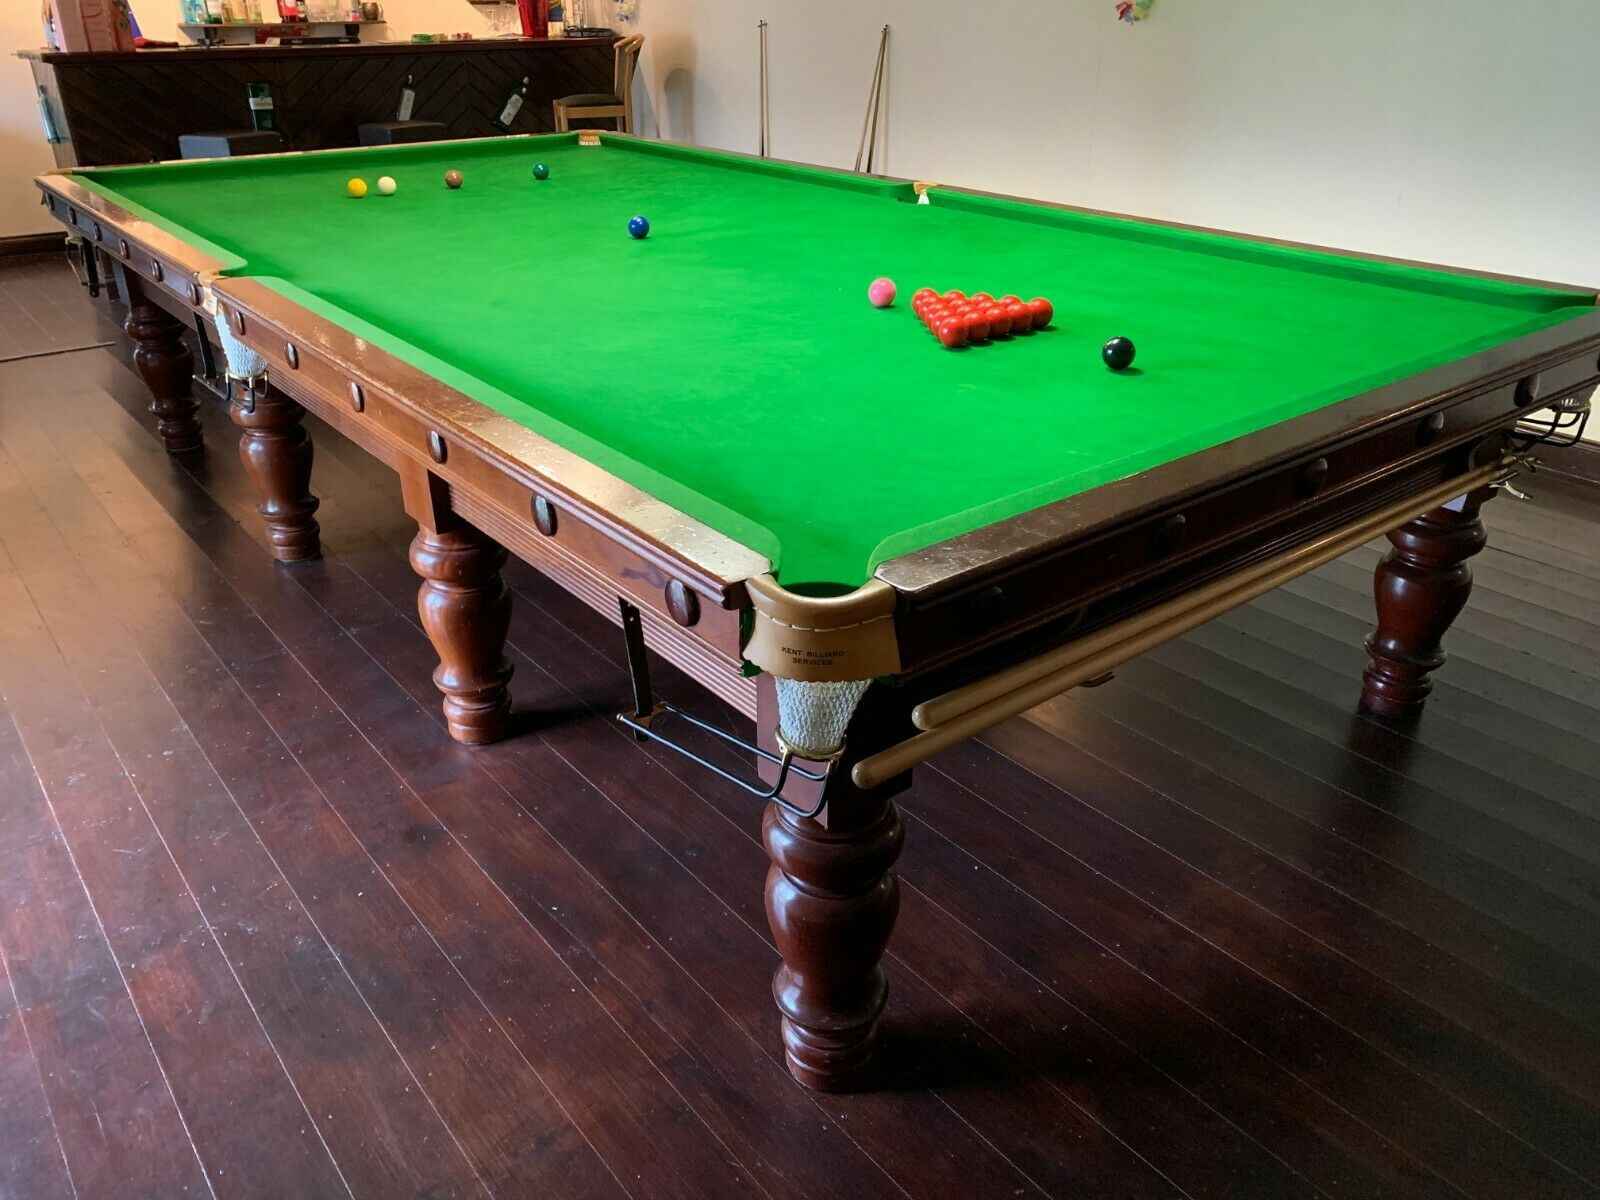 Full size snooker table - 12ft x6ft - slate bed, turned legs, beautiful table